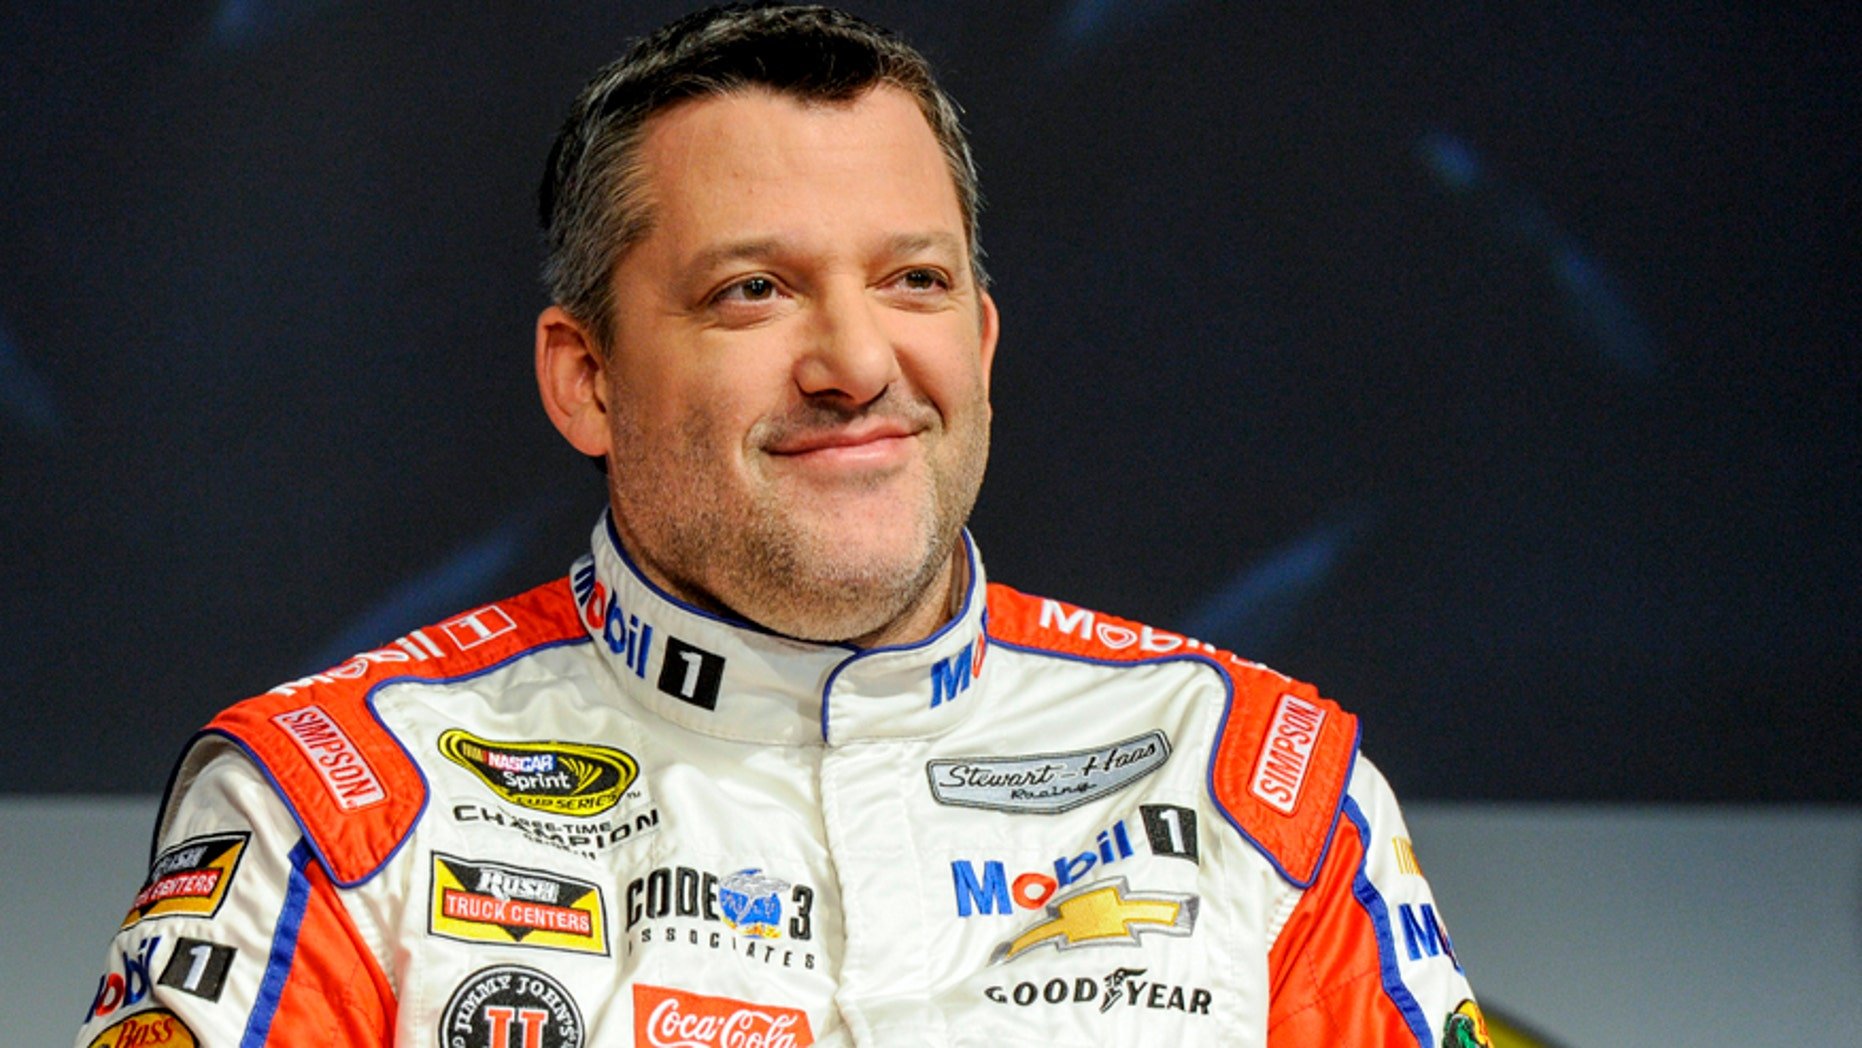 FILE - In this Thursay, Jan. 21, 2016, file photo, Stewart Haas Racing co-owner and driver Tony Stewart talks to members of the media during the NASCAR Charlotte Motor Speedway Media Tour in Charlotte, N.C. The three-time NASCAR champion has been hospitalized with a back injury after a non-racing accident on Sunday and Stewart-Haas Racing is unsure of the extent of his injuries, a team spokesman told The Associated Press, Tuesday, Feb. 2, 2016. (AP Photo/Mike McCarn, File)